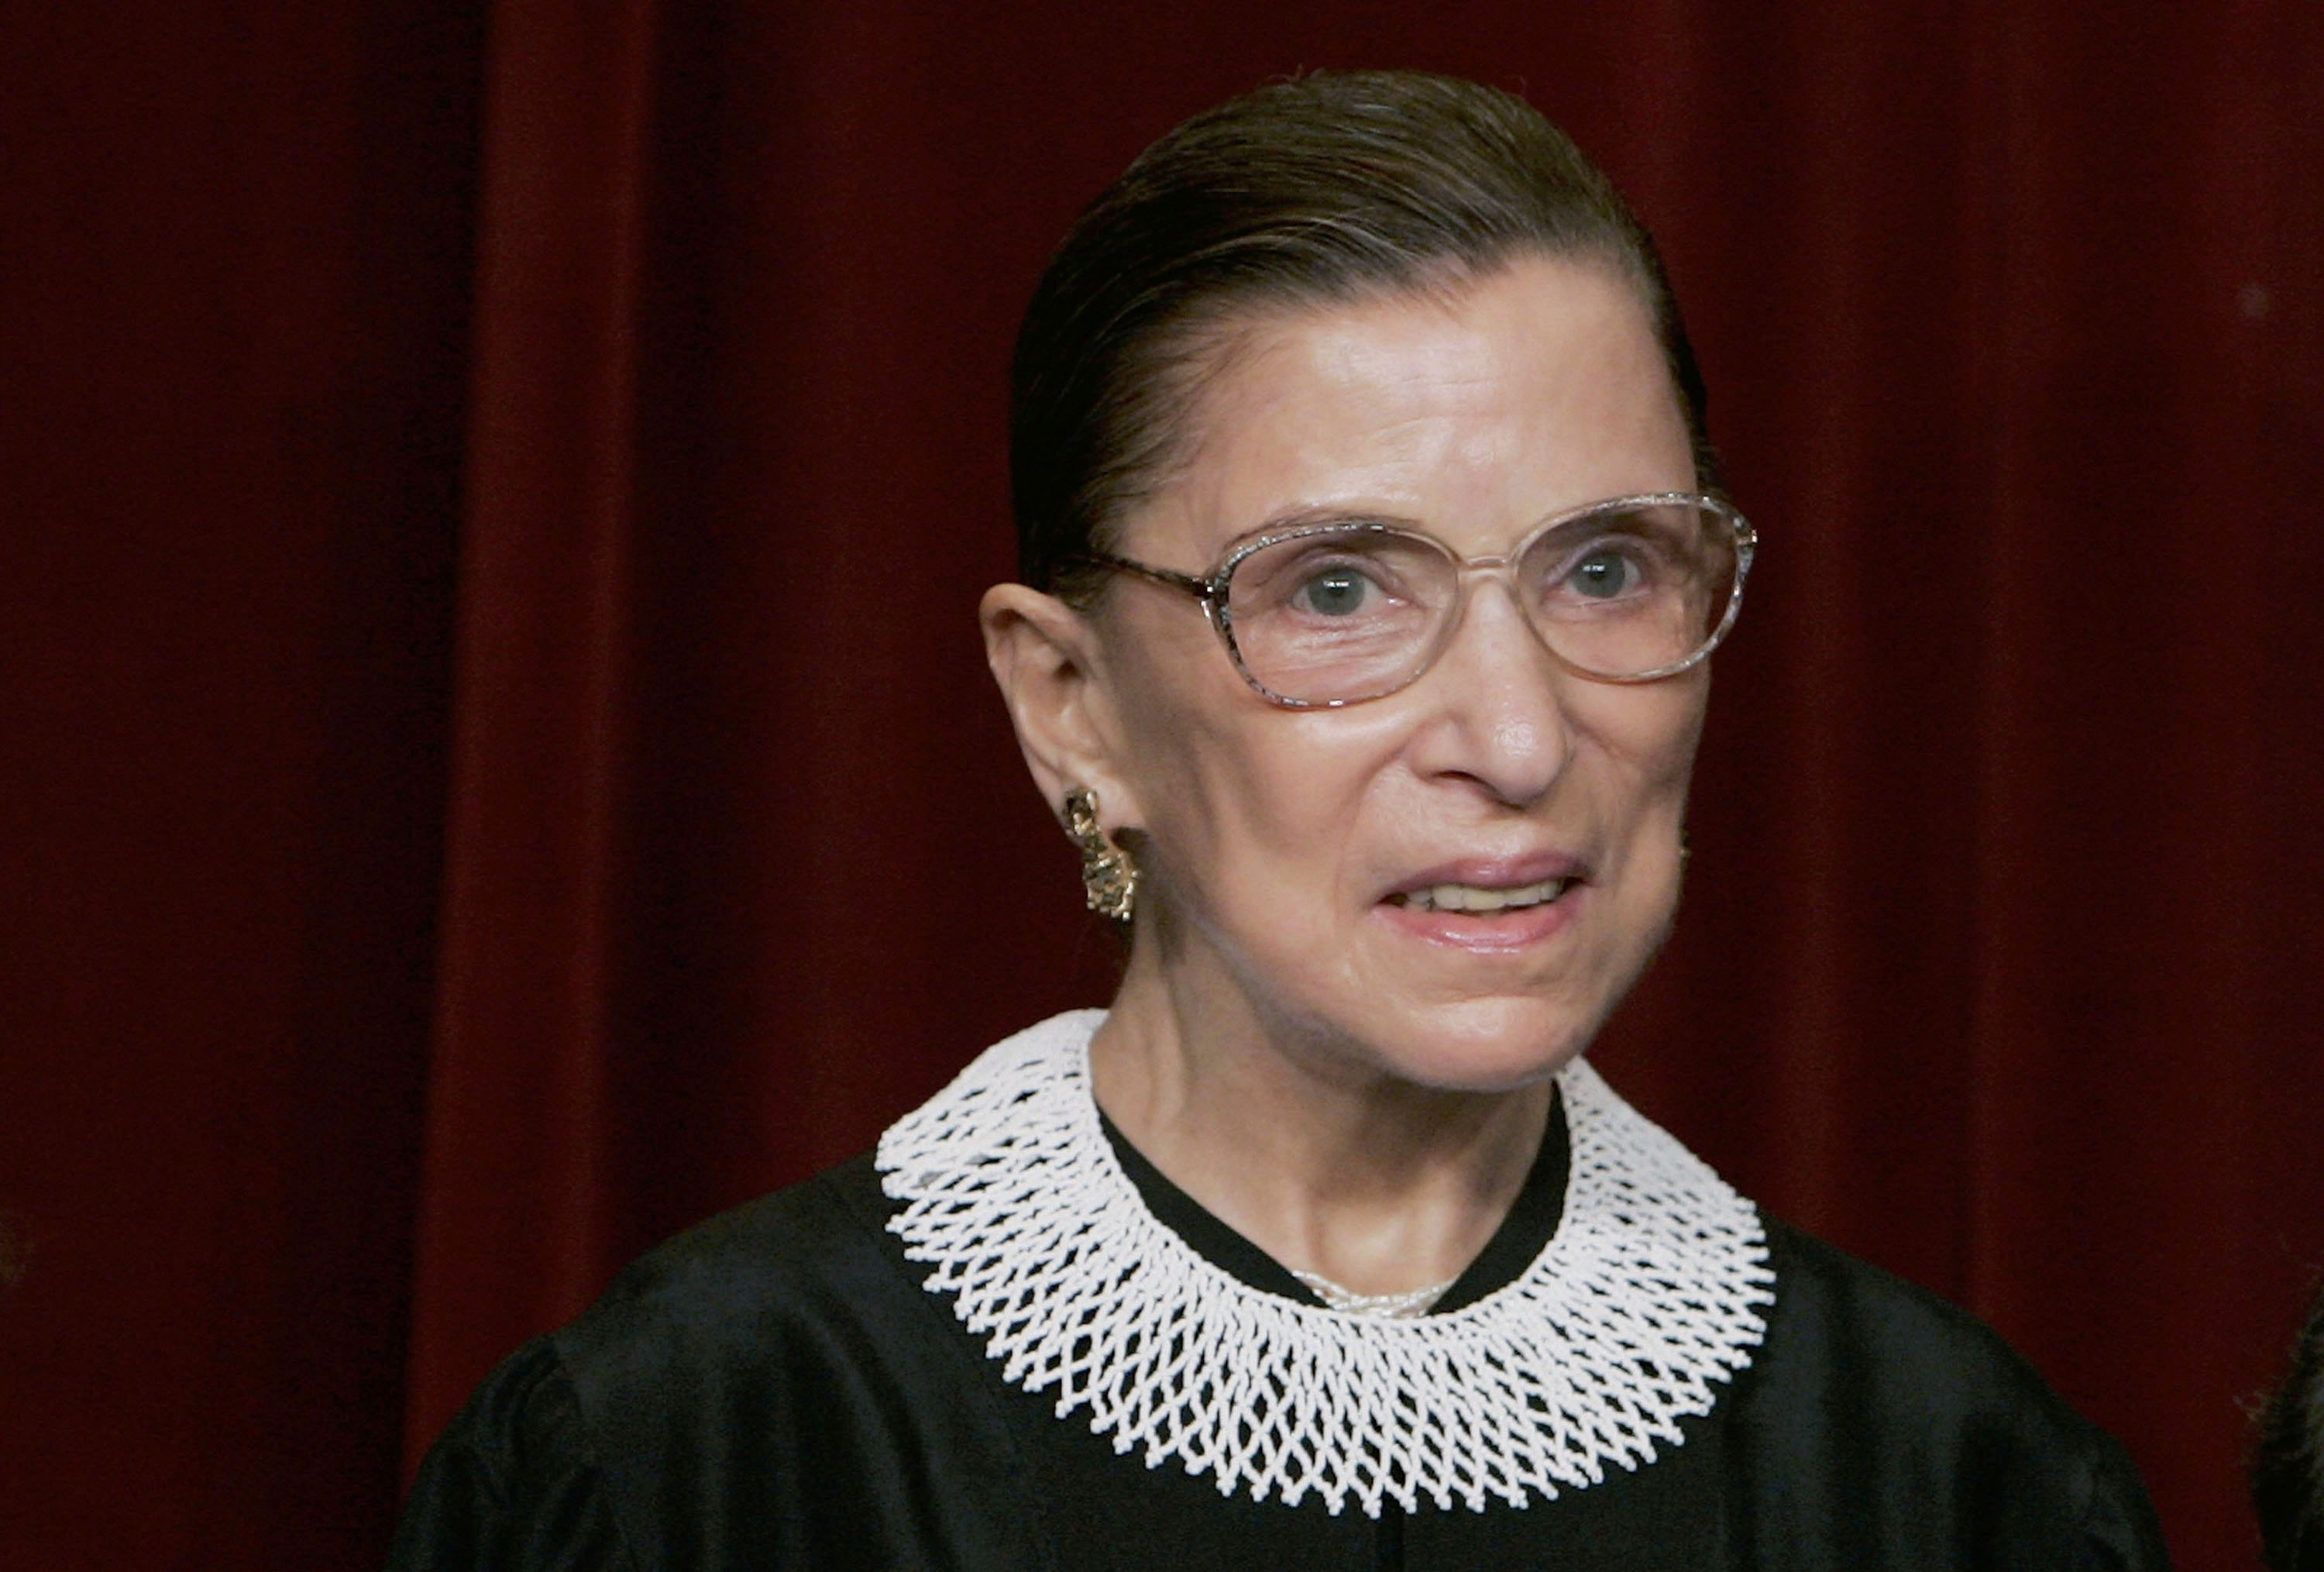 Oh Law Firm >> Justice Ruth Bader Ginsburg: A Dedicated Crusader For ...